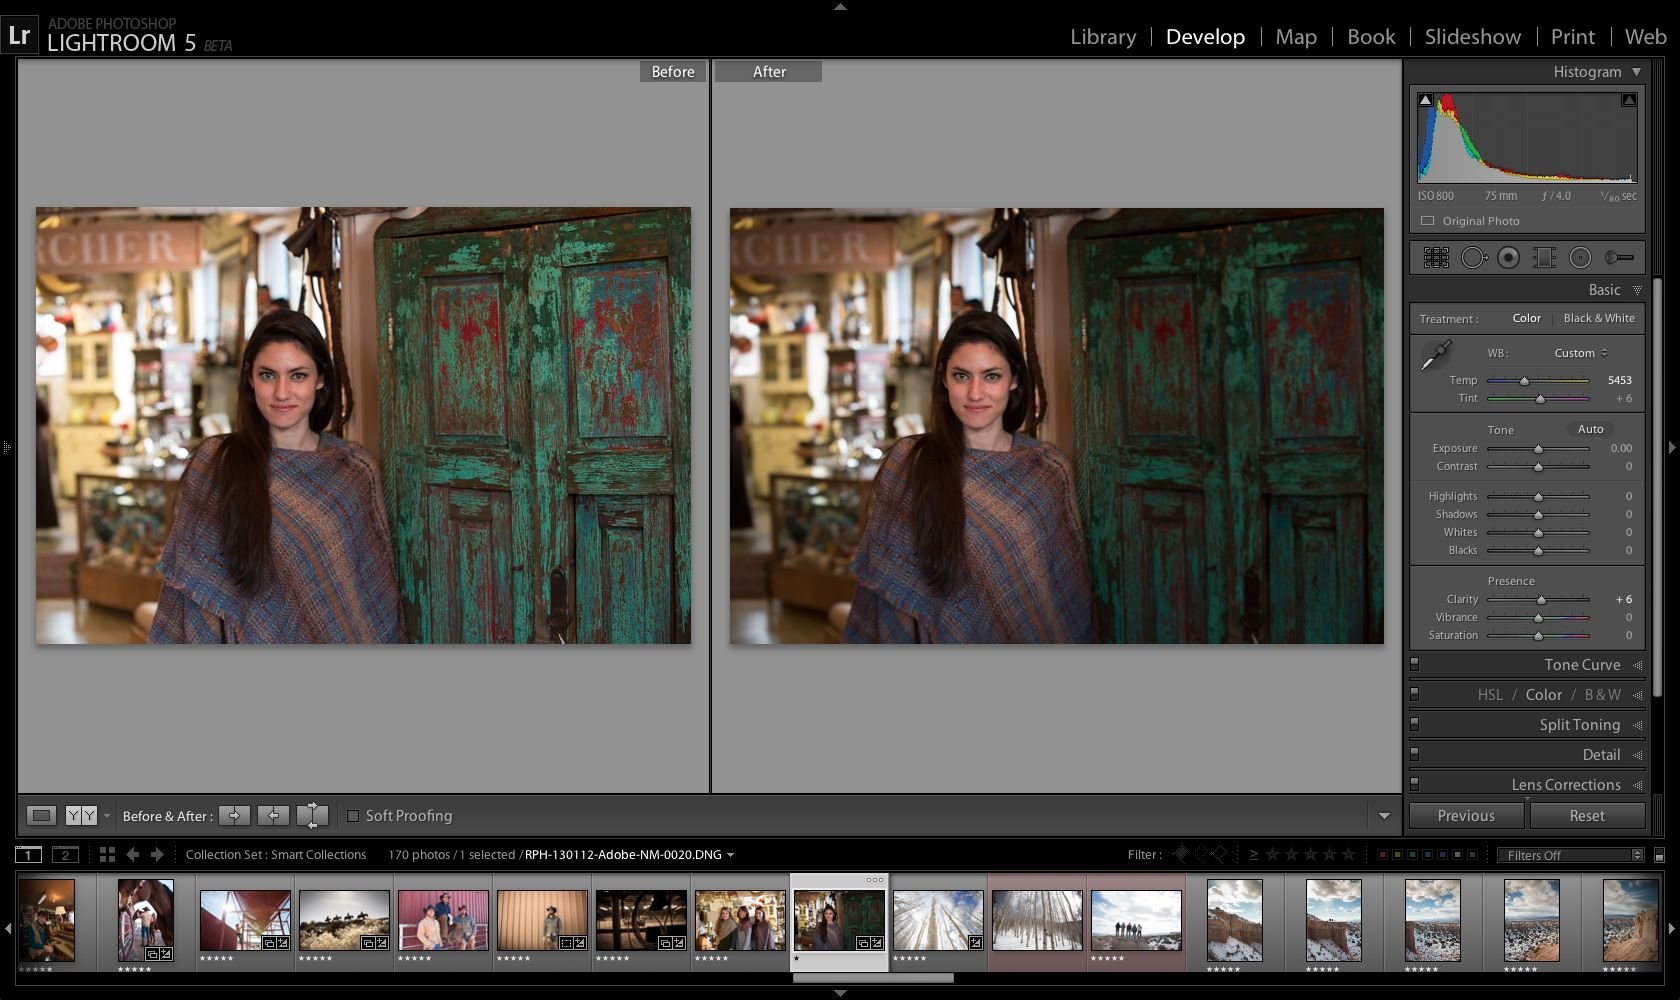 Photoshop 5 Free Lightroom 5 Photo Editing Software The New York Times